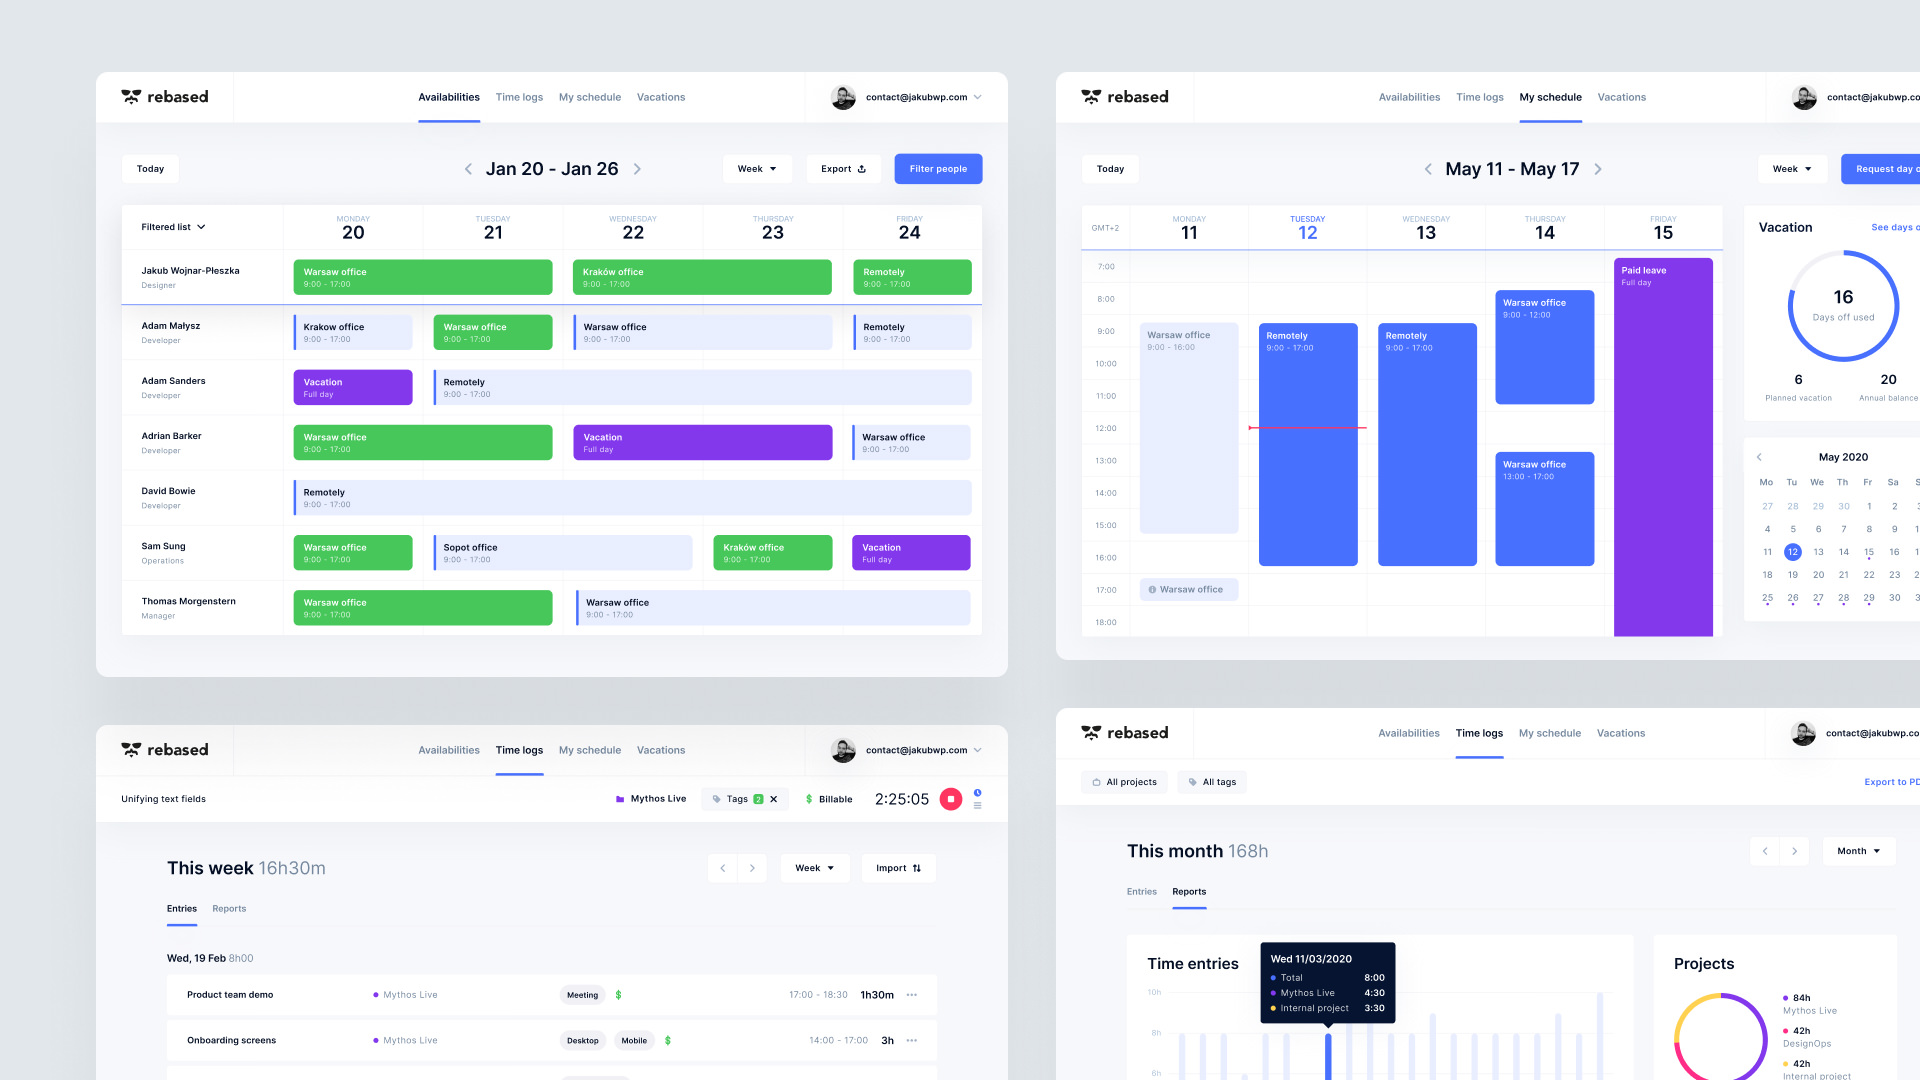 Design System and User Interface for the Harmonogram Web App